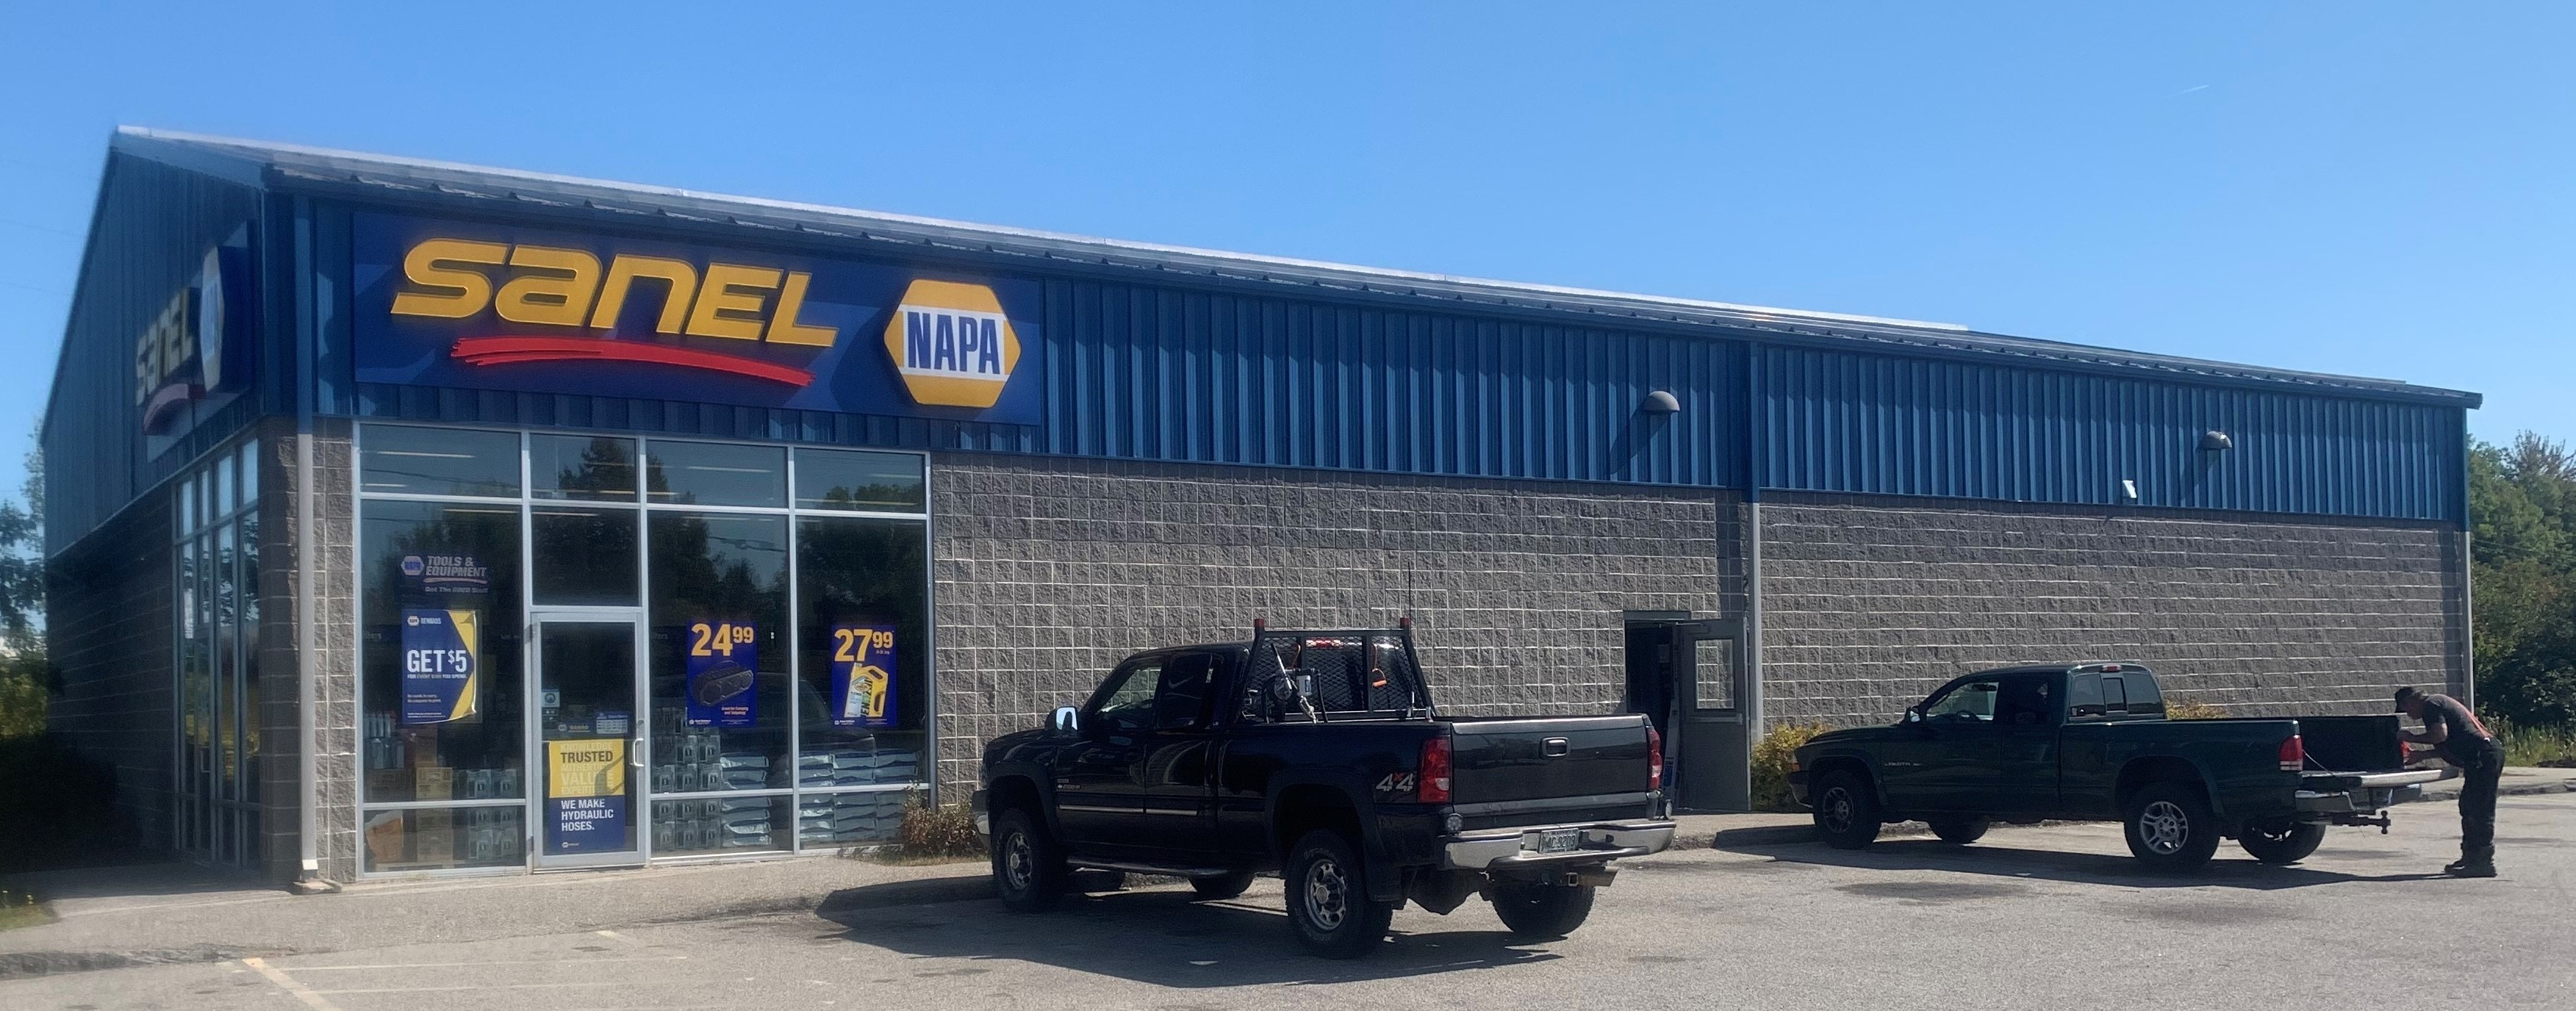 Where Is The Closest Auto Parts Store >> Biddeford, ME - Sanel NAPA